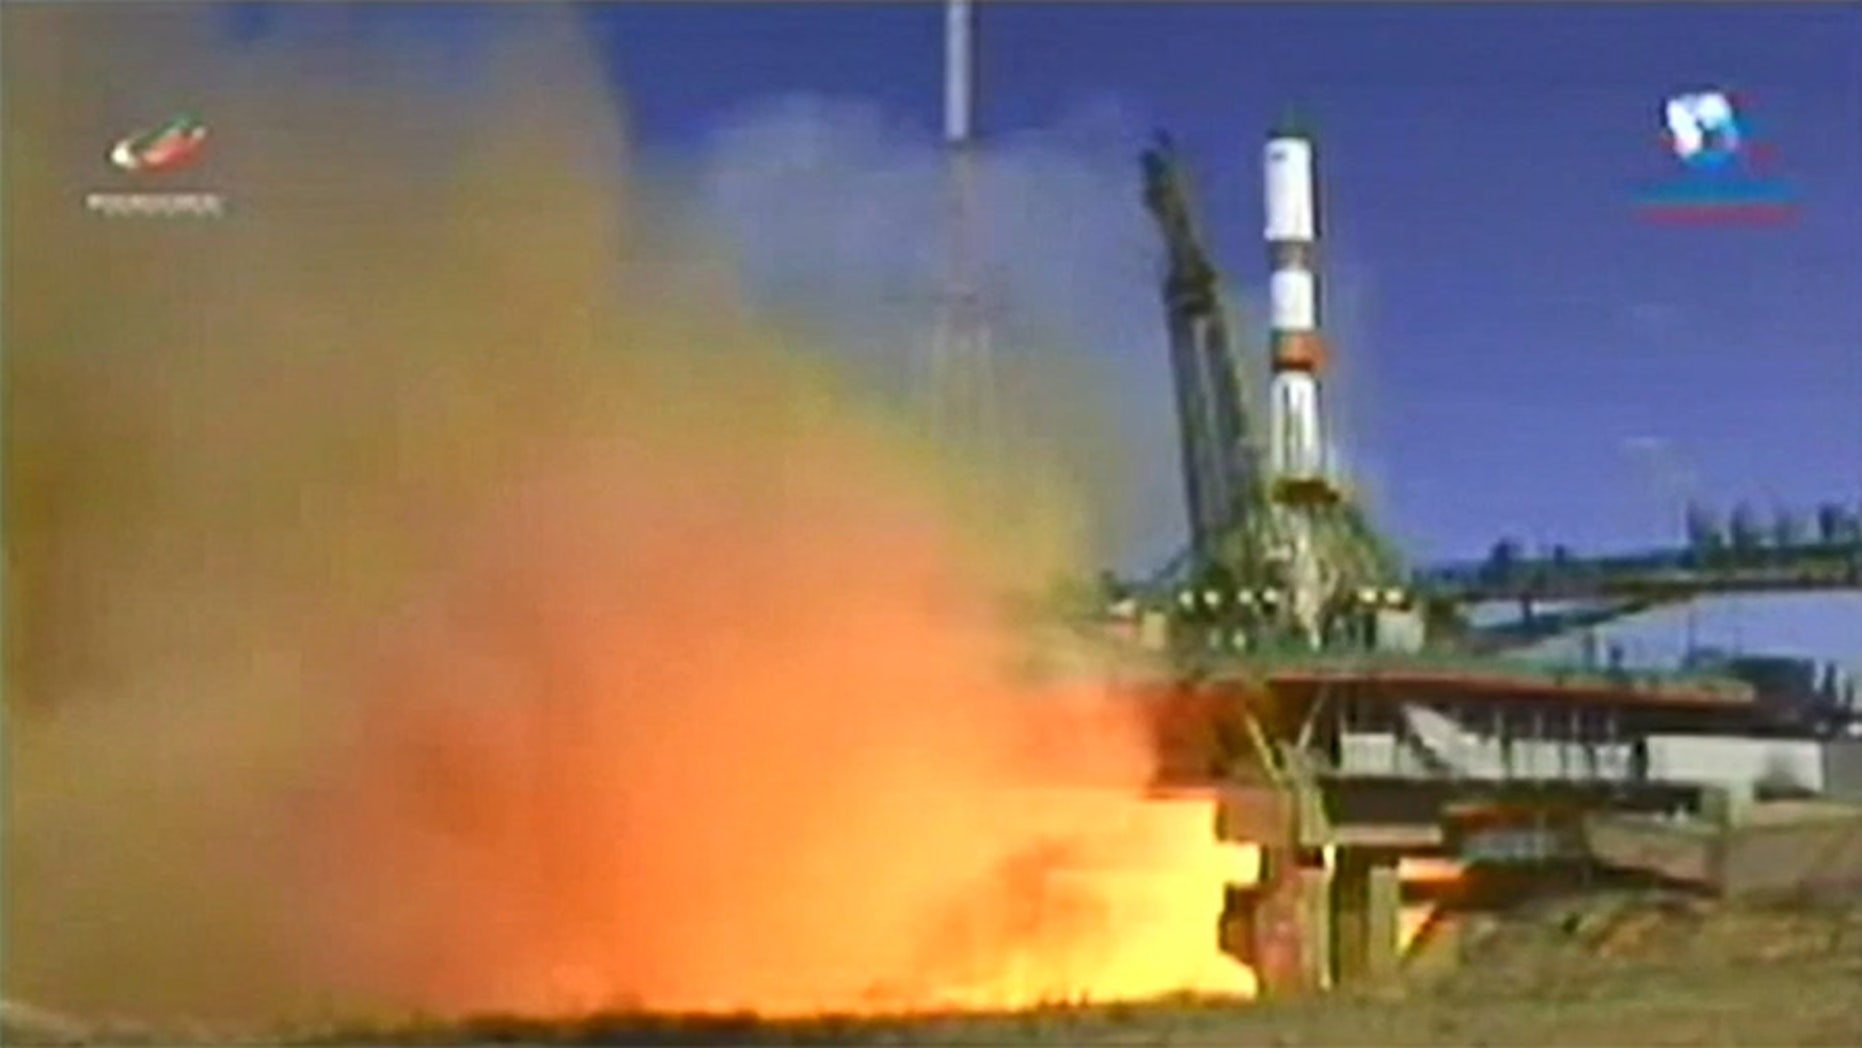 Russia's Progress 72 resupply ship blasts off on time from Kazakhstan to the International Space Station.